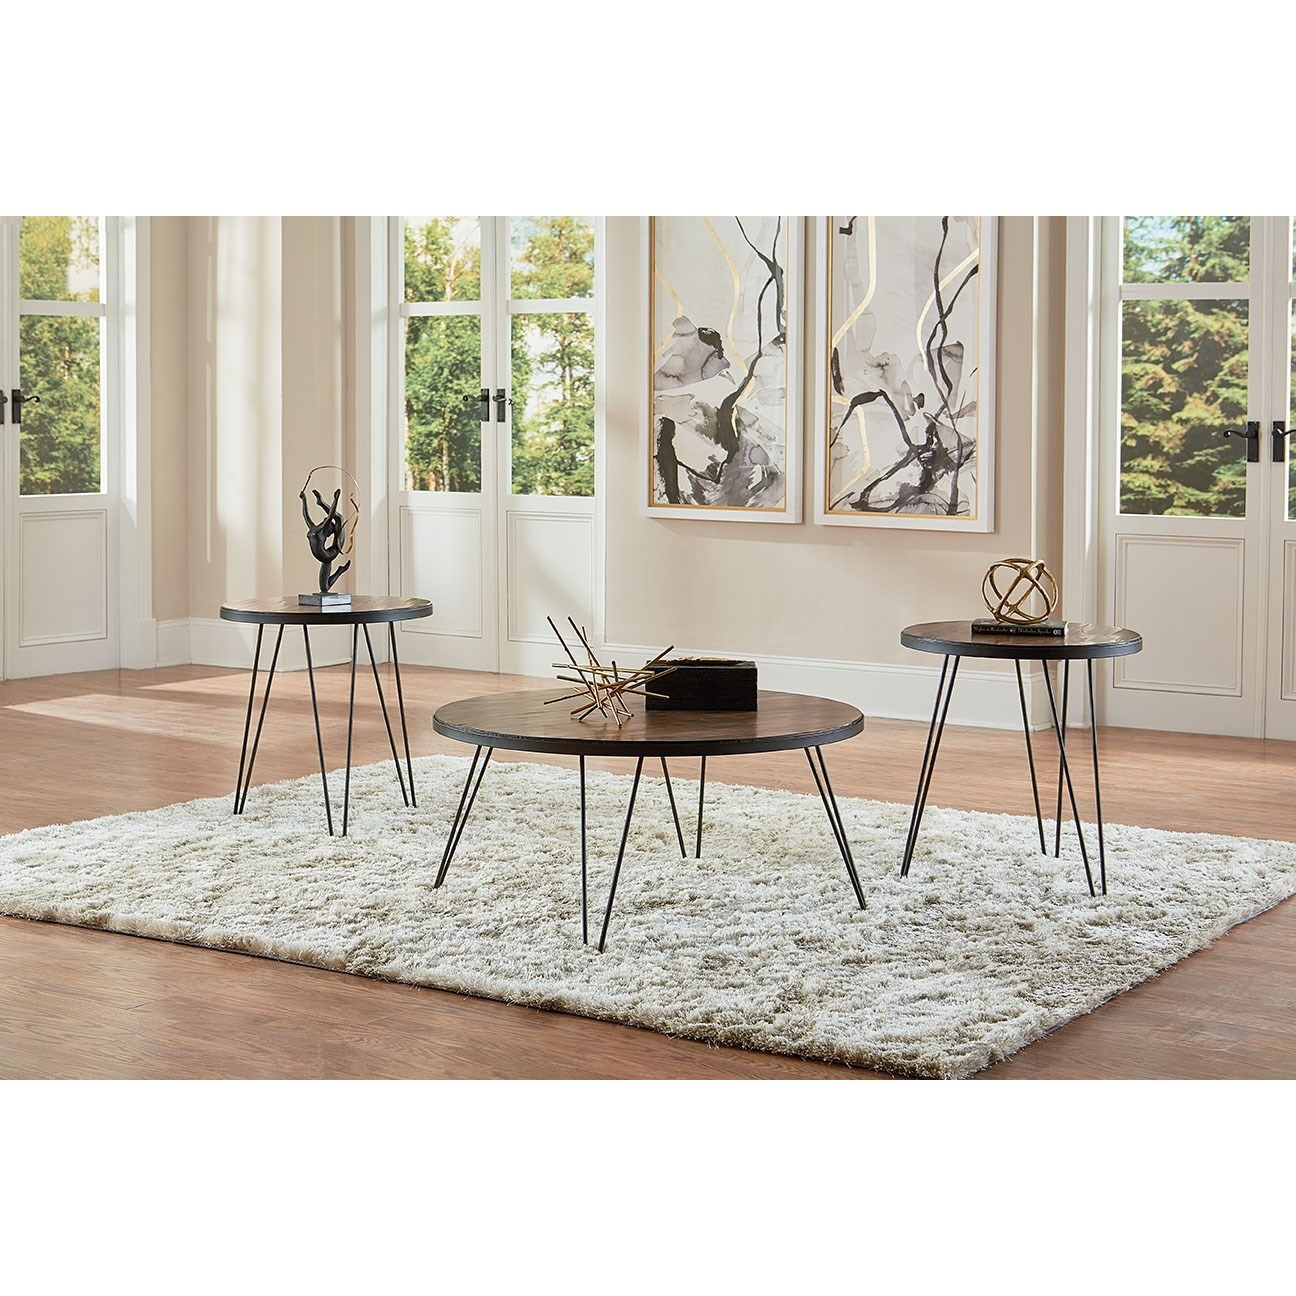 VFM Signature Paterno Occasional Table Group - Item Number: 20360 Occasional Group 1